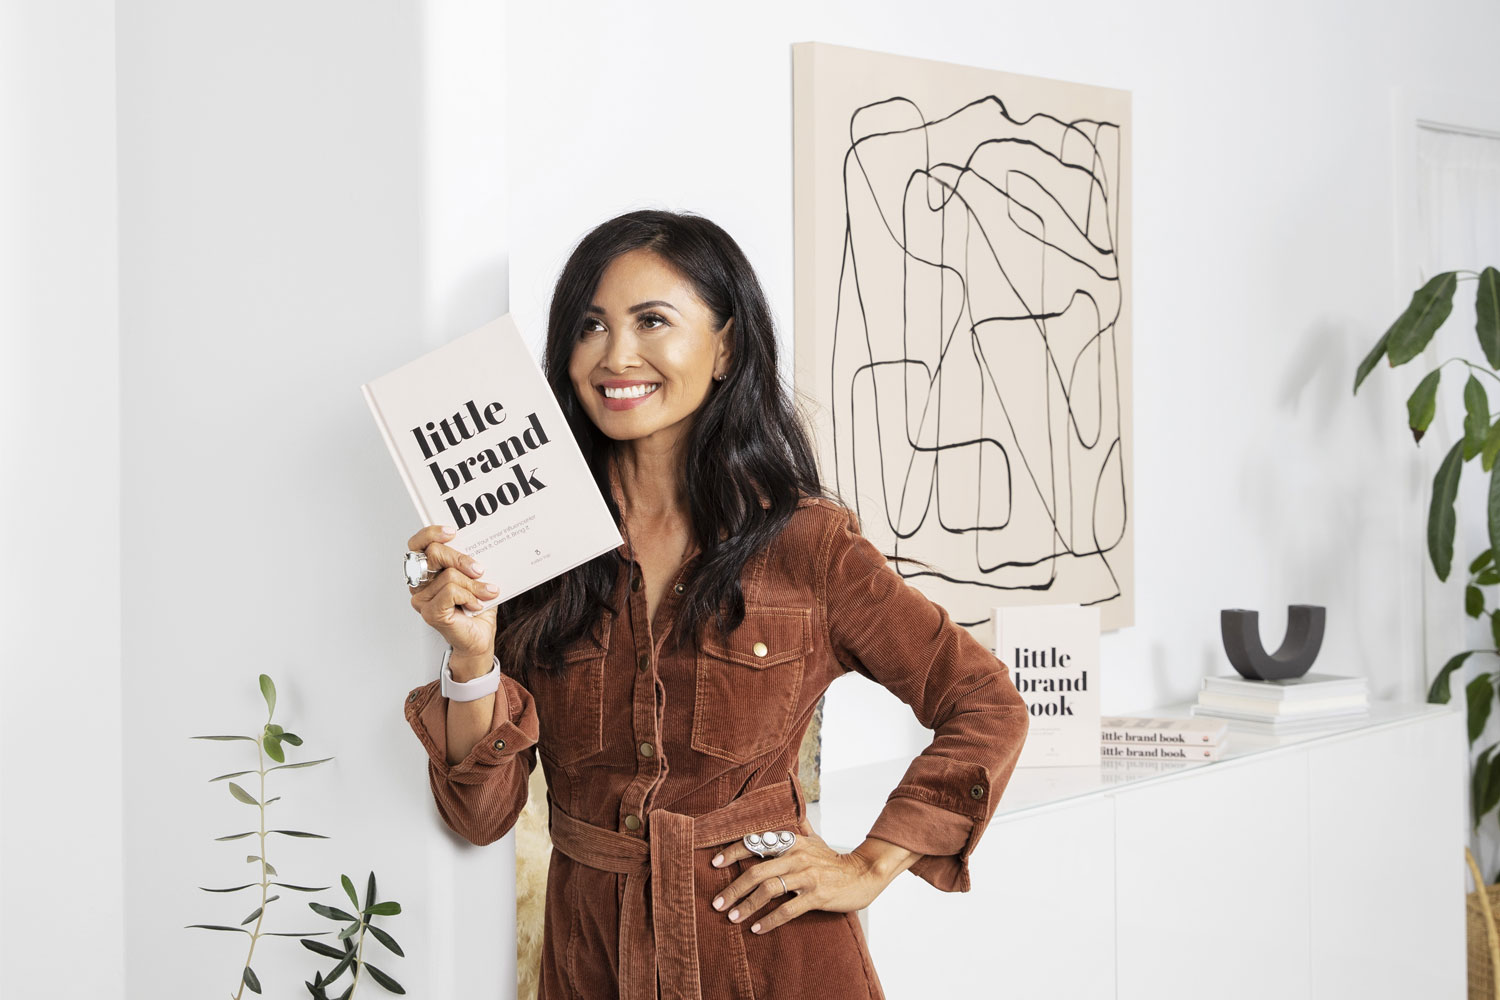 little brand book author Kalika Yap shares her knowledge about branding